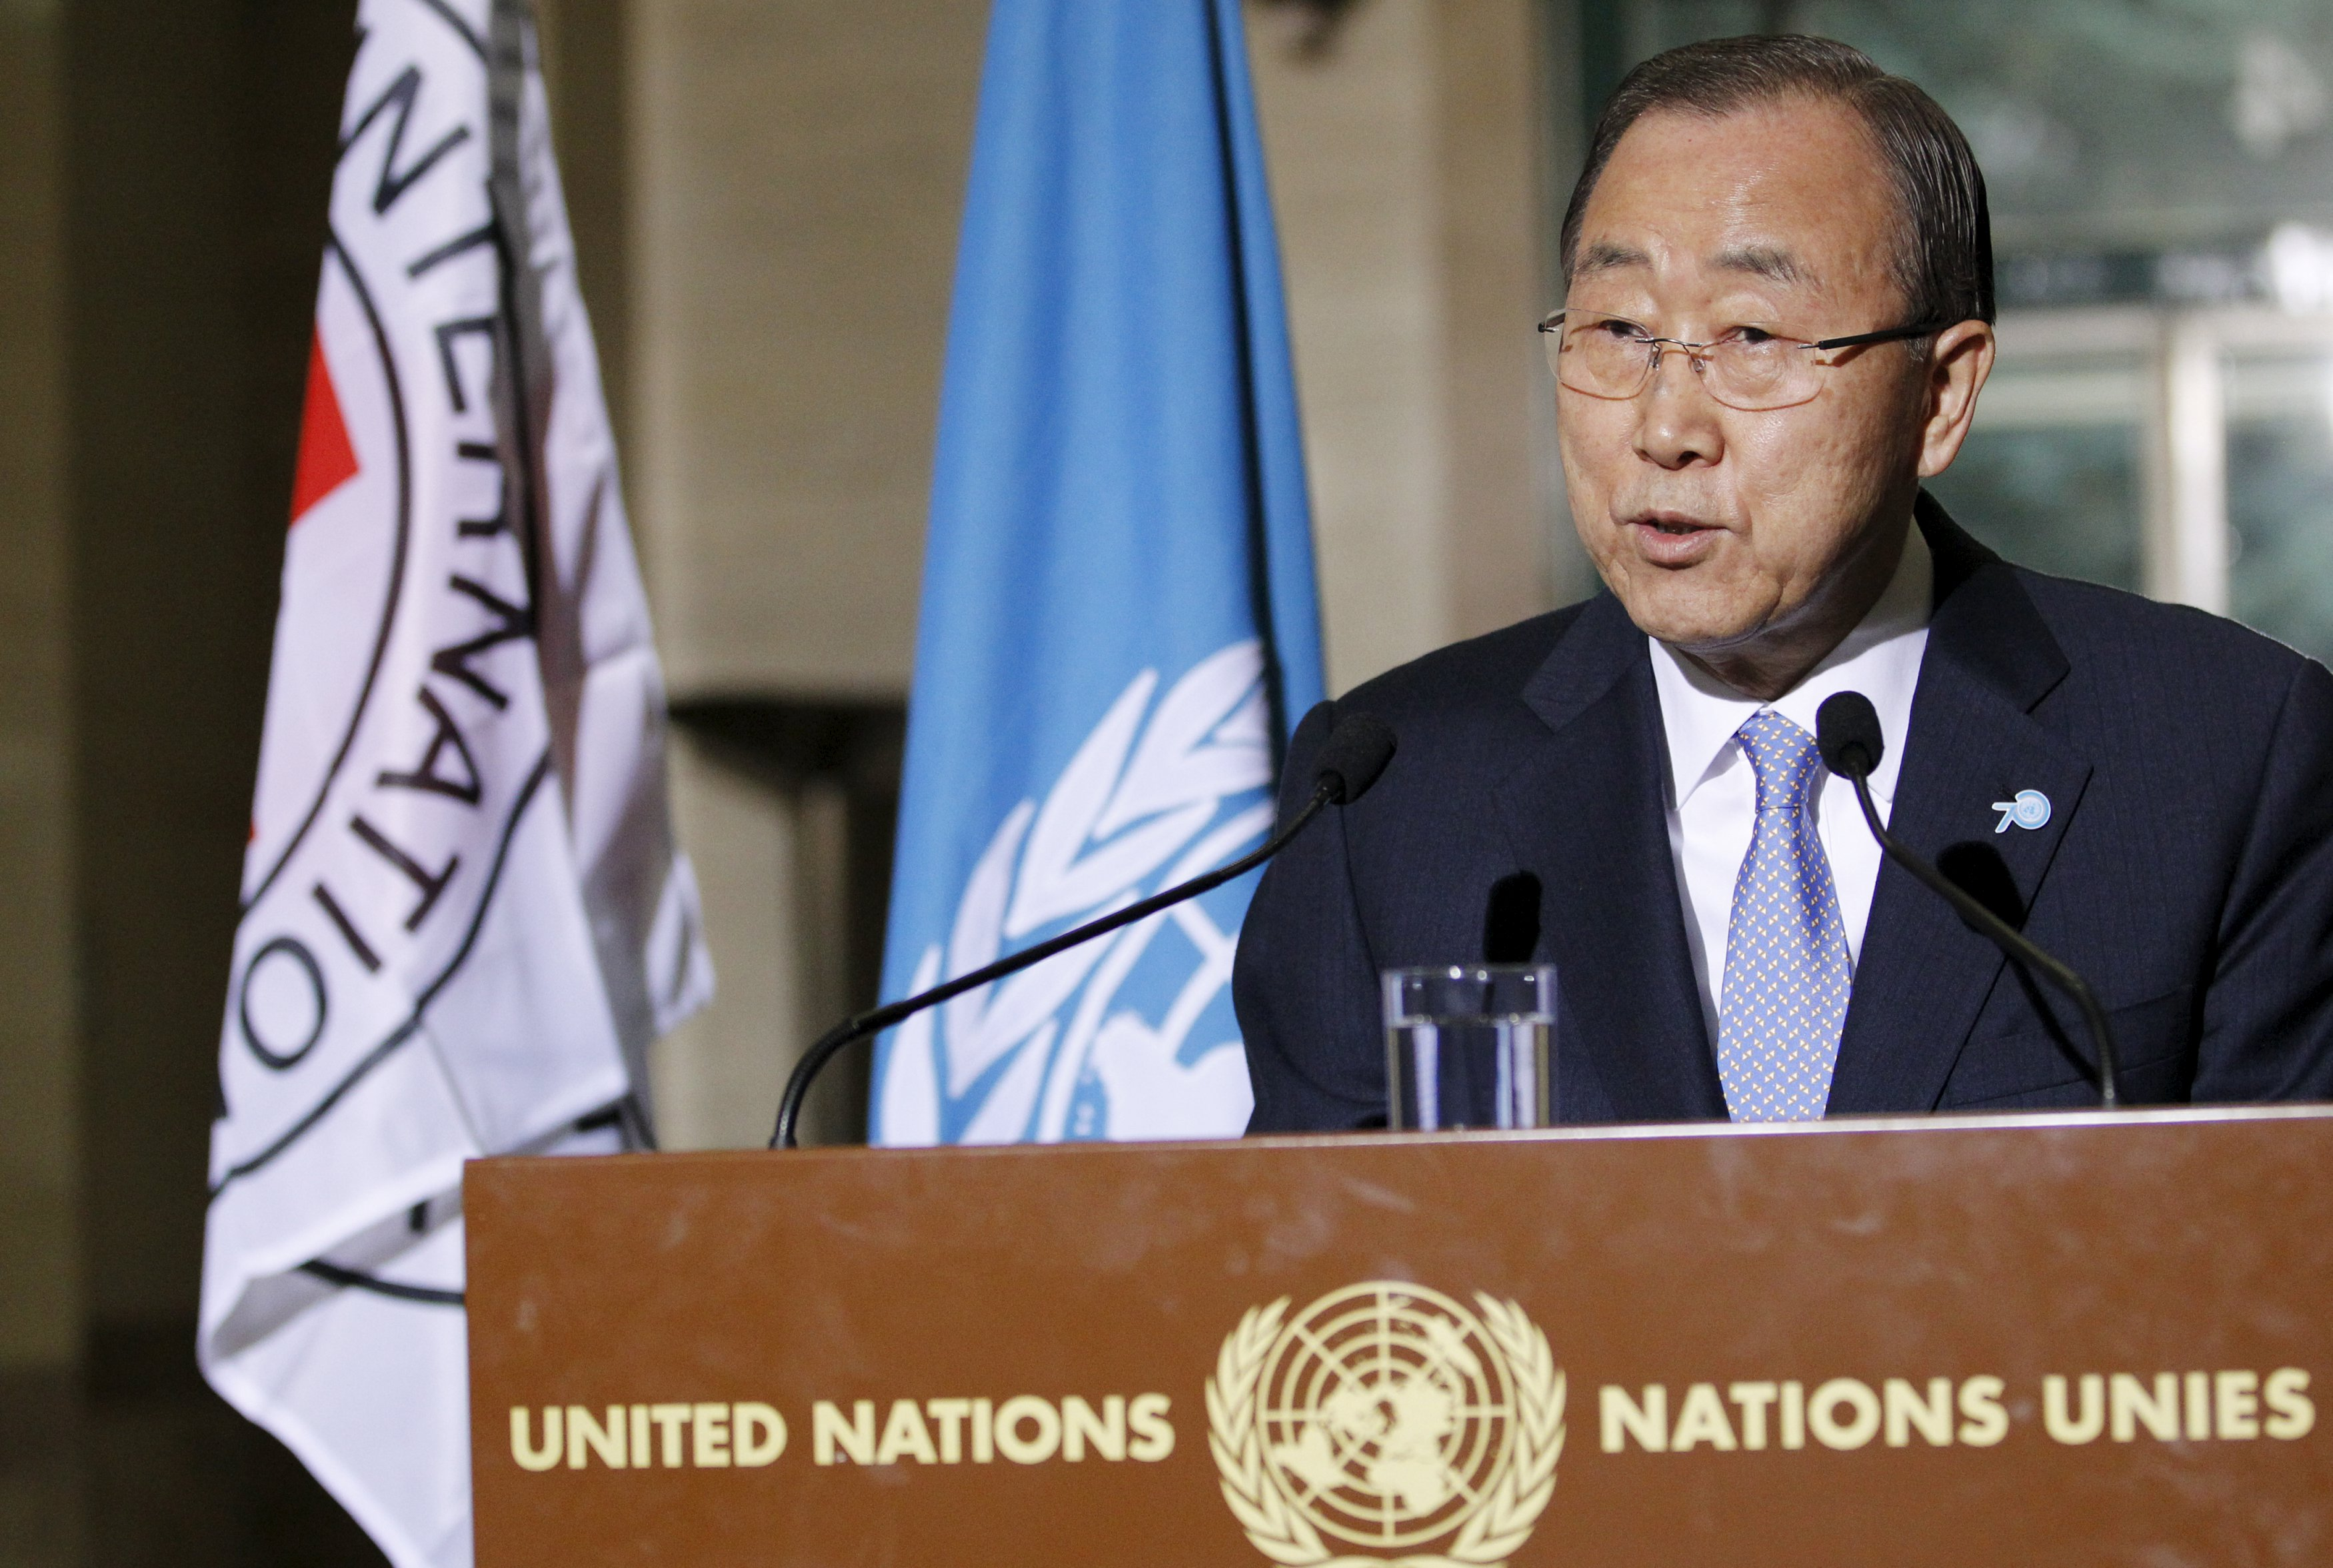 UN Secretary-General Ban Ki-Moon speaks to the media with International Committee of the Red Cross (ICRC) President Peter Maurer (not pictured) about the worldu2019s humanitarian crises at the United Nations European headquarters in Geneva, Switzerland, October 31, 2015. Photo: Reuters